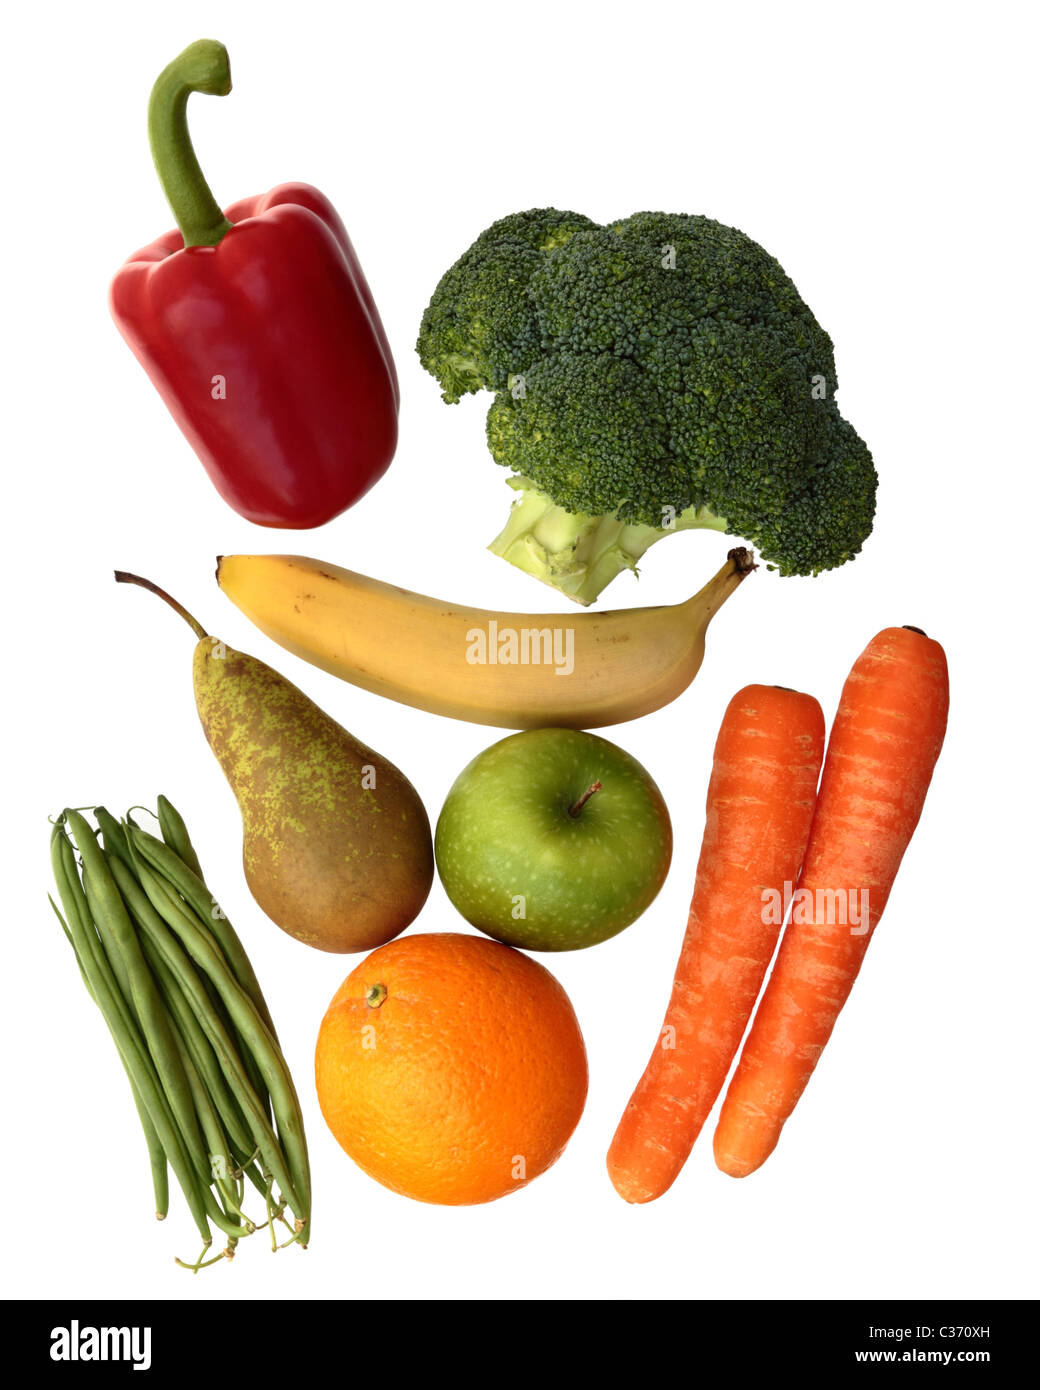 Mixed fruit & vegetables. Red pepper, broccoli, green beans, carrots, banana,pear,orange and apple. Isolated - Stock Image